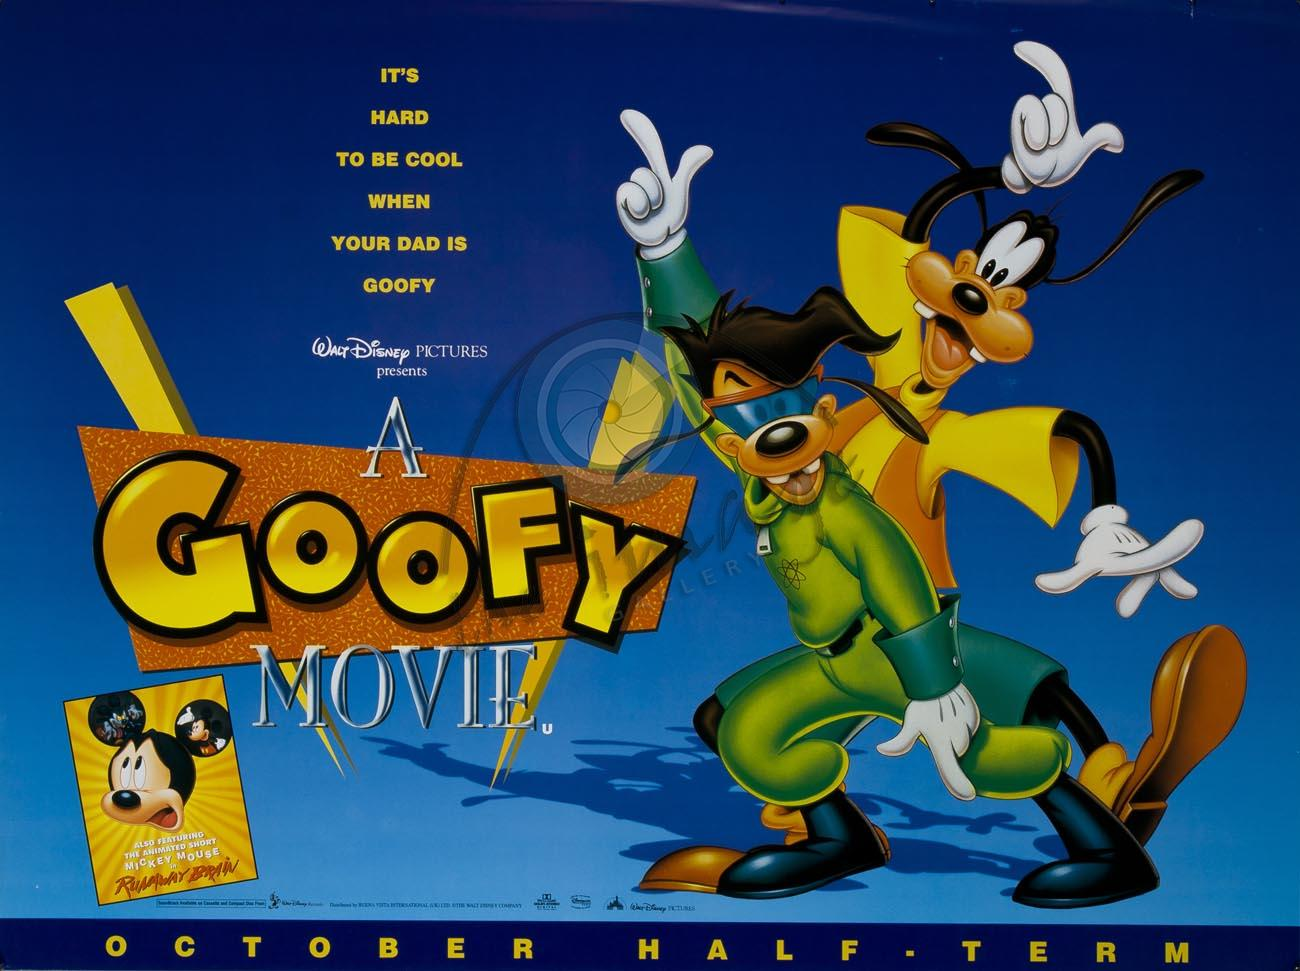 Day Your Favourite Animated Movie Films And Things - How your favourite animated movies are put together and edited